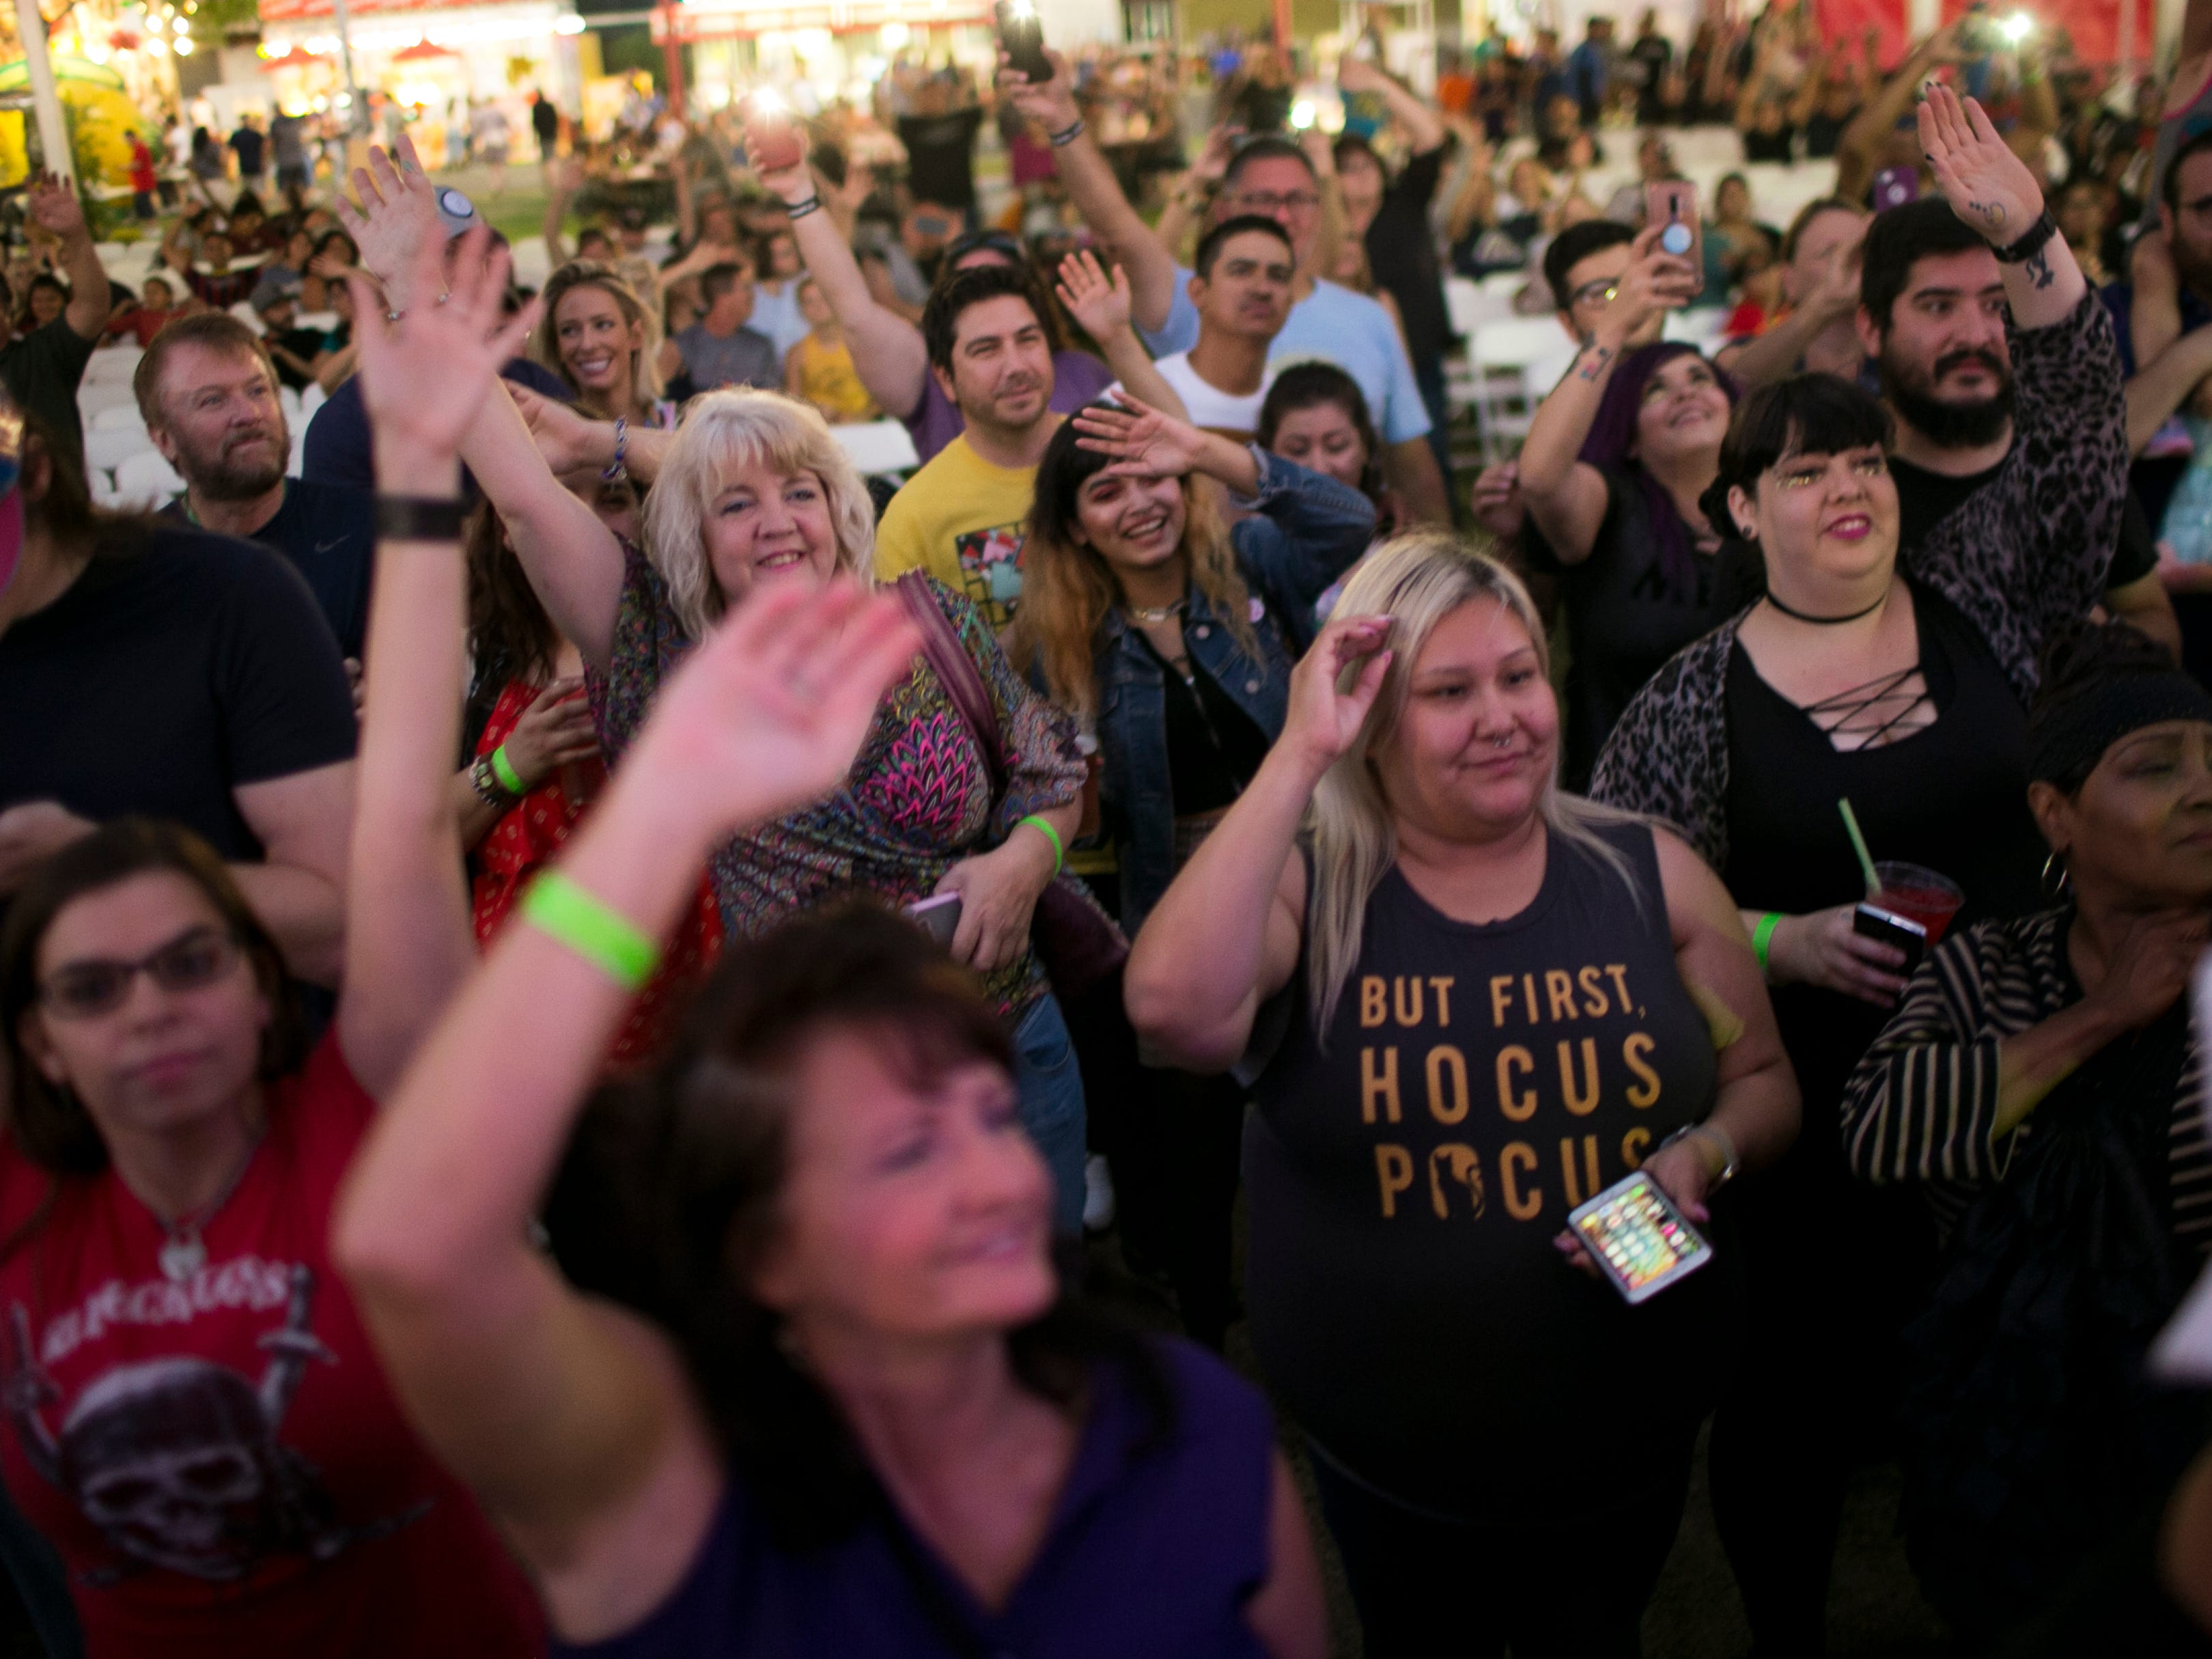 Fans dance along to Mini Kiss as they perform at the Arizona State Fair in Phoenix on Saturday, Oct. 6, 2018.